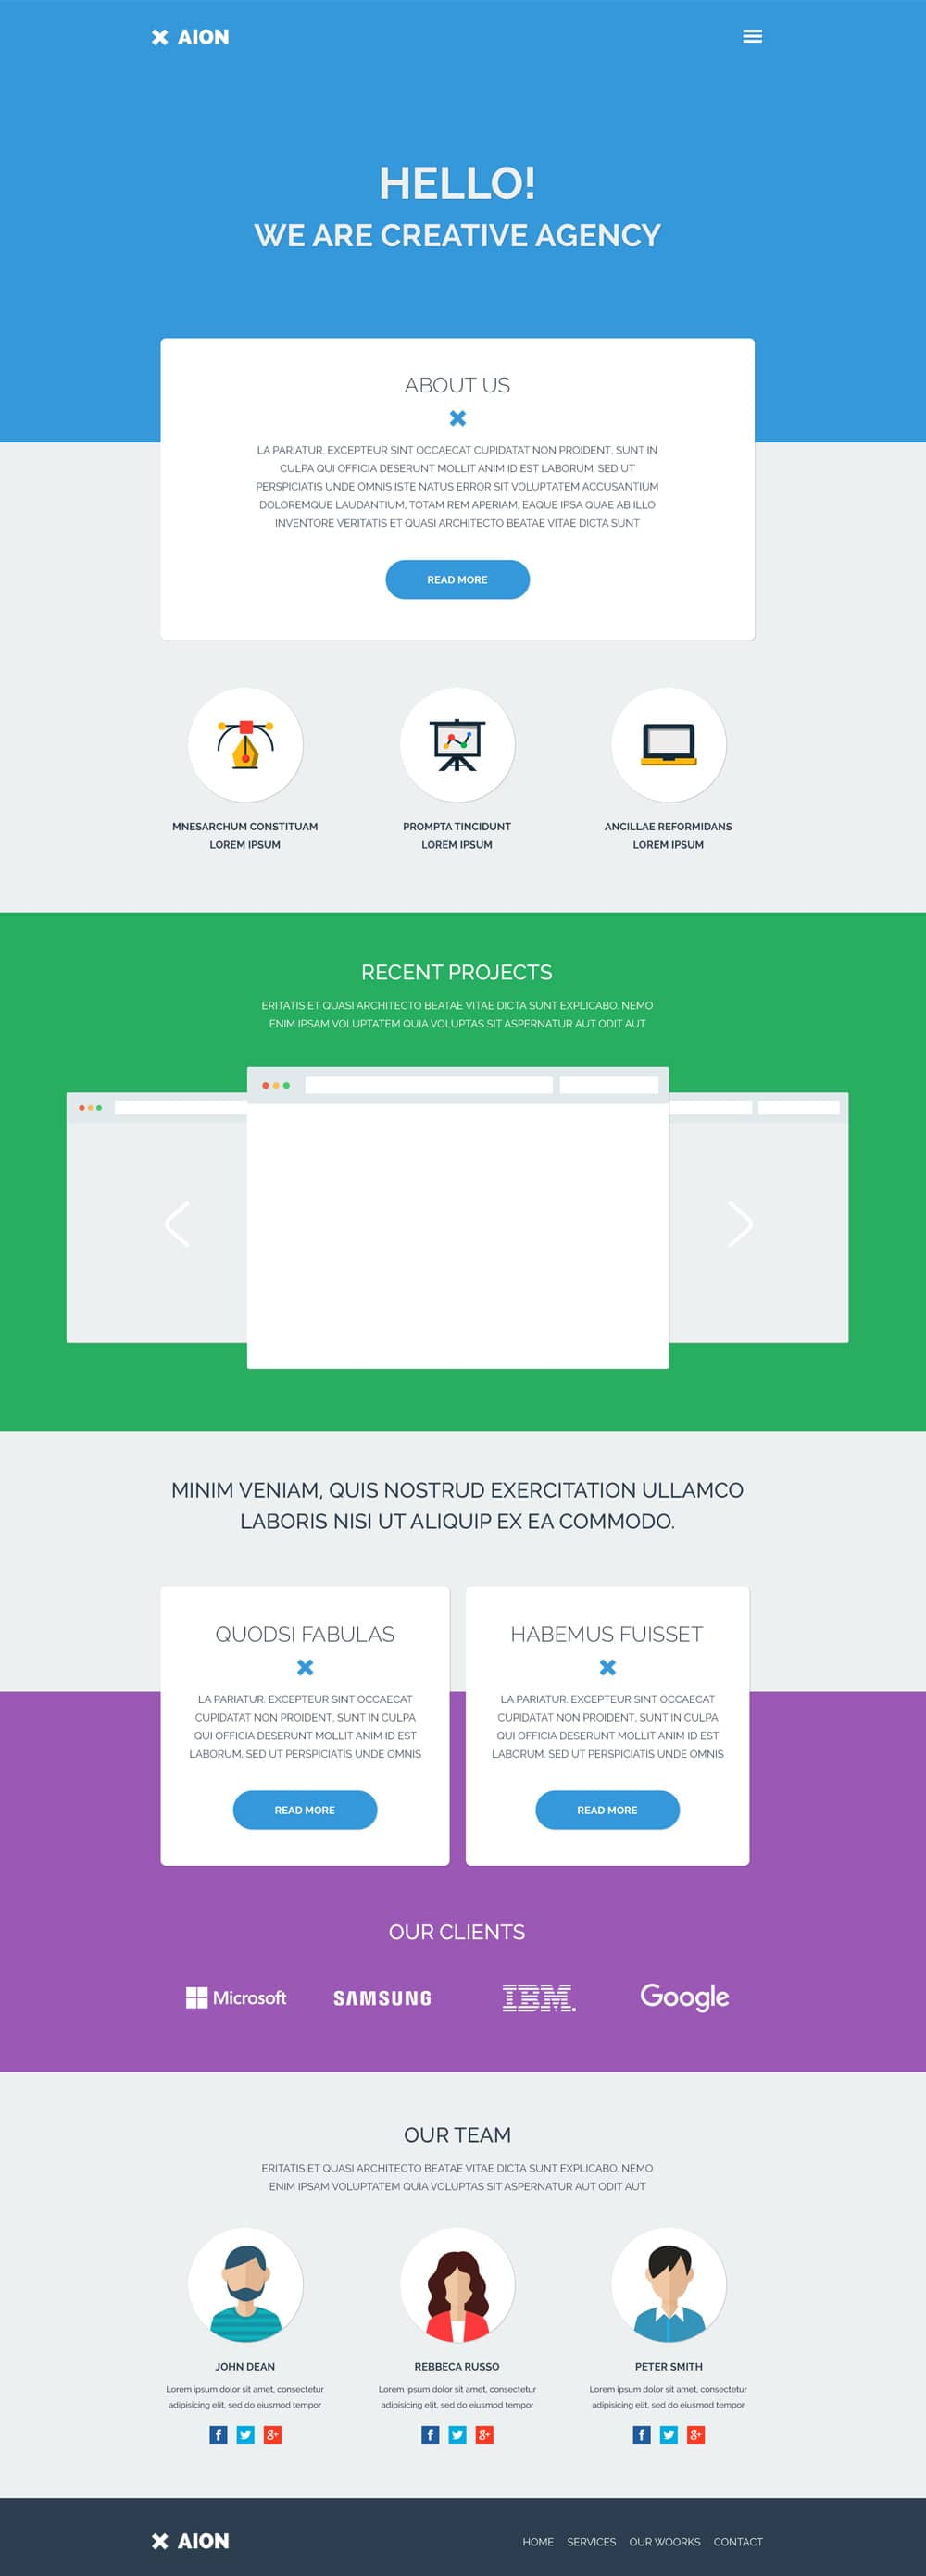 Free corporate and business web templates psd aion free web template psd flashek Choice Image